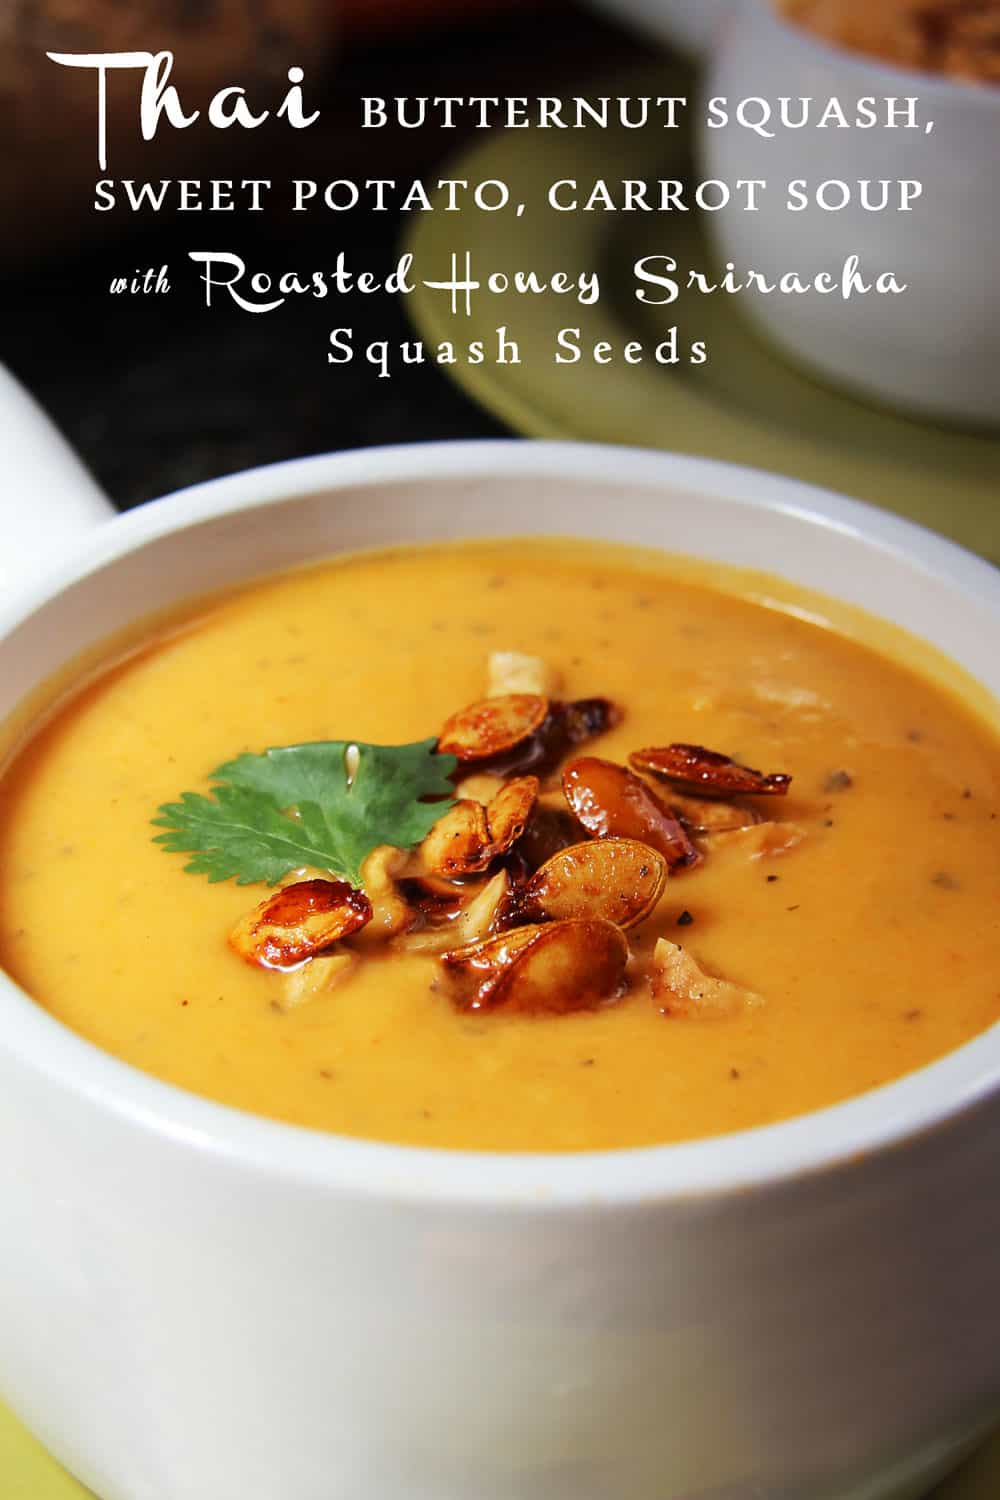 Thai Butternut Squash, Sweet Potato, Carrot Soup - Carlsbad Cravings